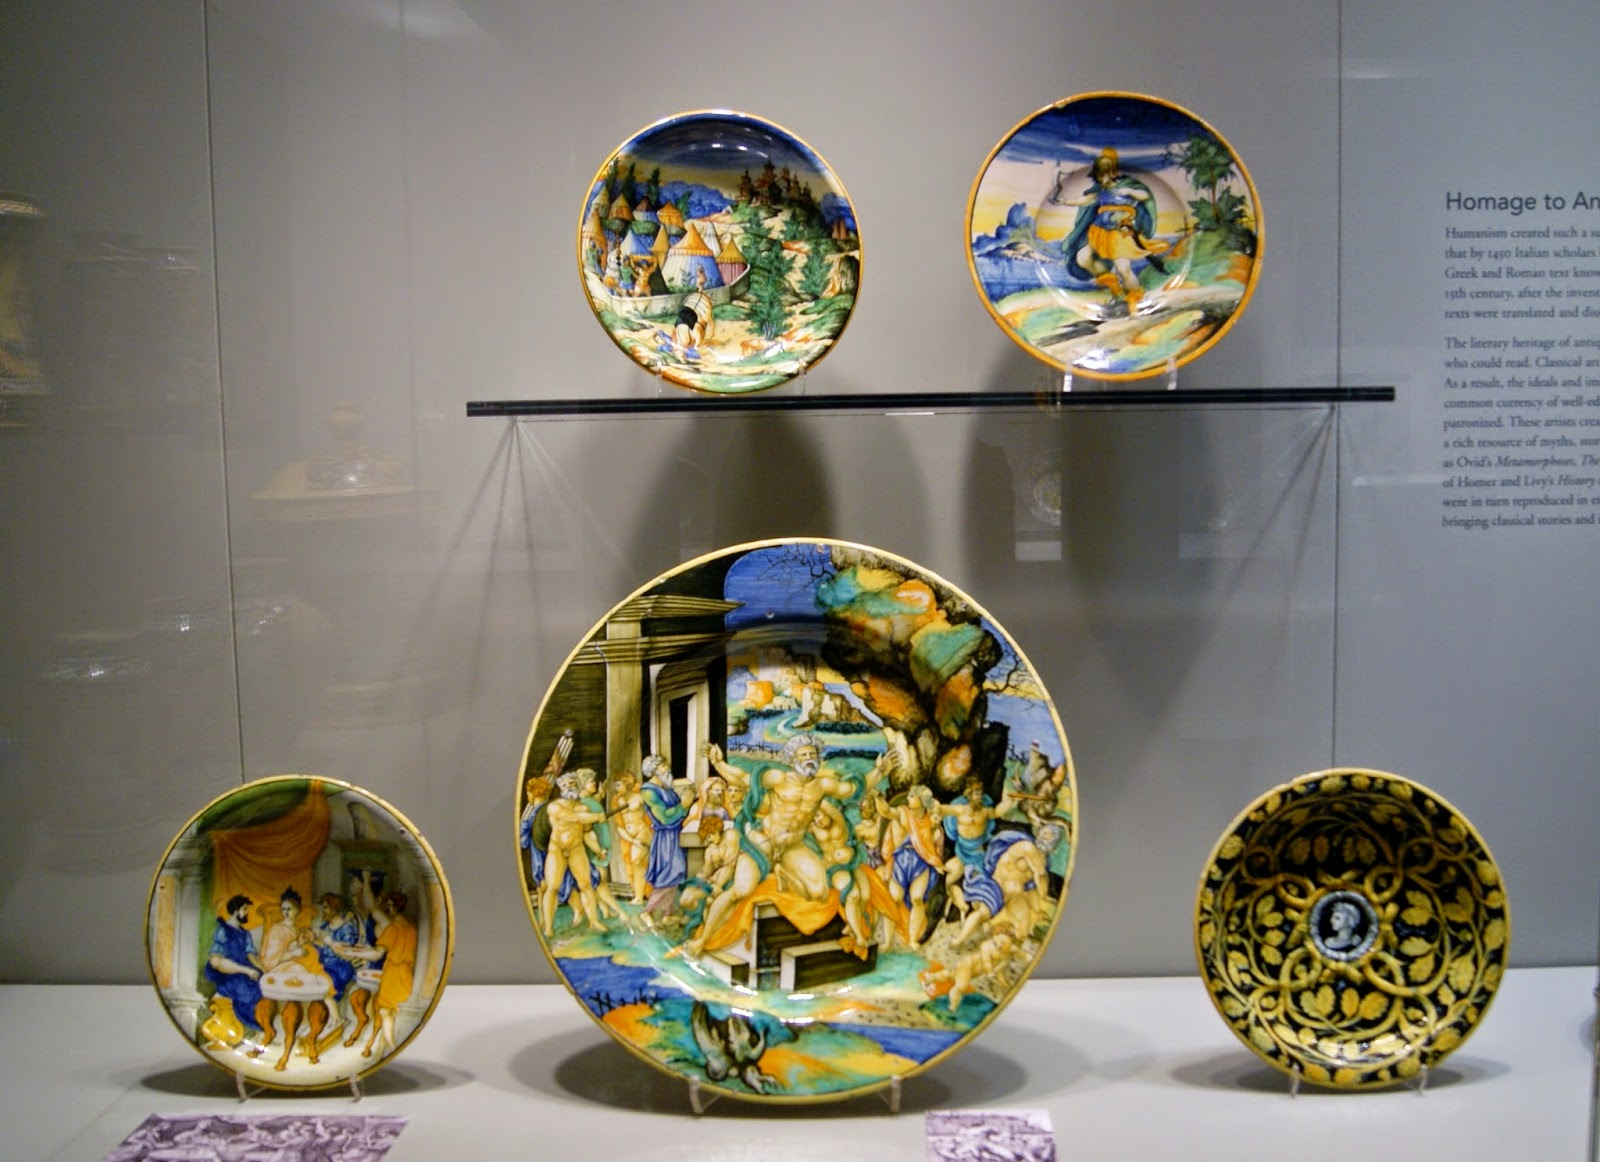 Gardiner Museum of Ceramic Art in Toronto, Artmatters, Culture, Ontario, Canada, MelaniePs, The Purple Scarf, Camp Fires, Exhibit, Exhibition, Italian Renaissance